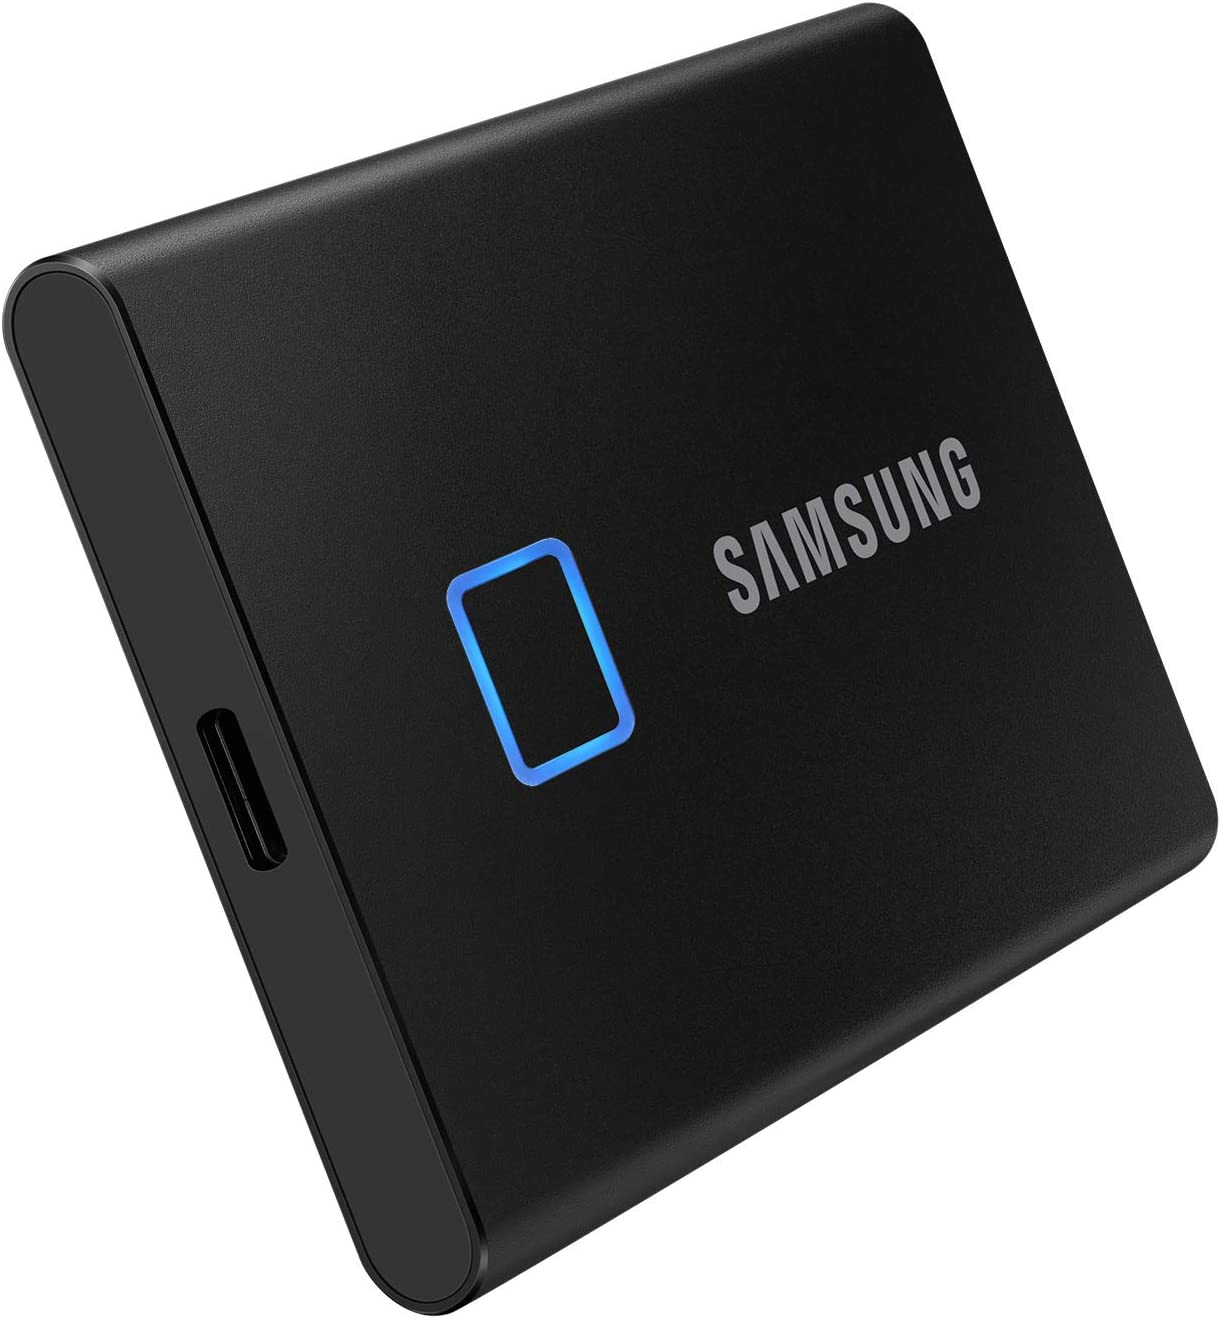 Samsung T7 Touch Portable SSD - USB 3.2 Gen.2 SSD Externo Negro ...